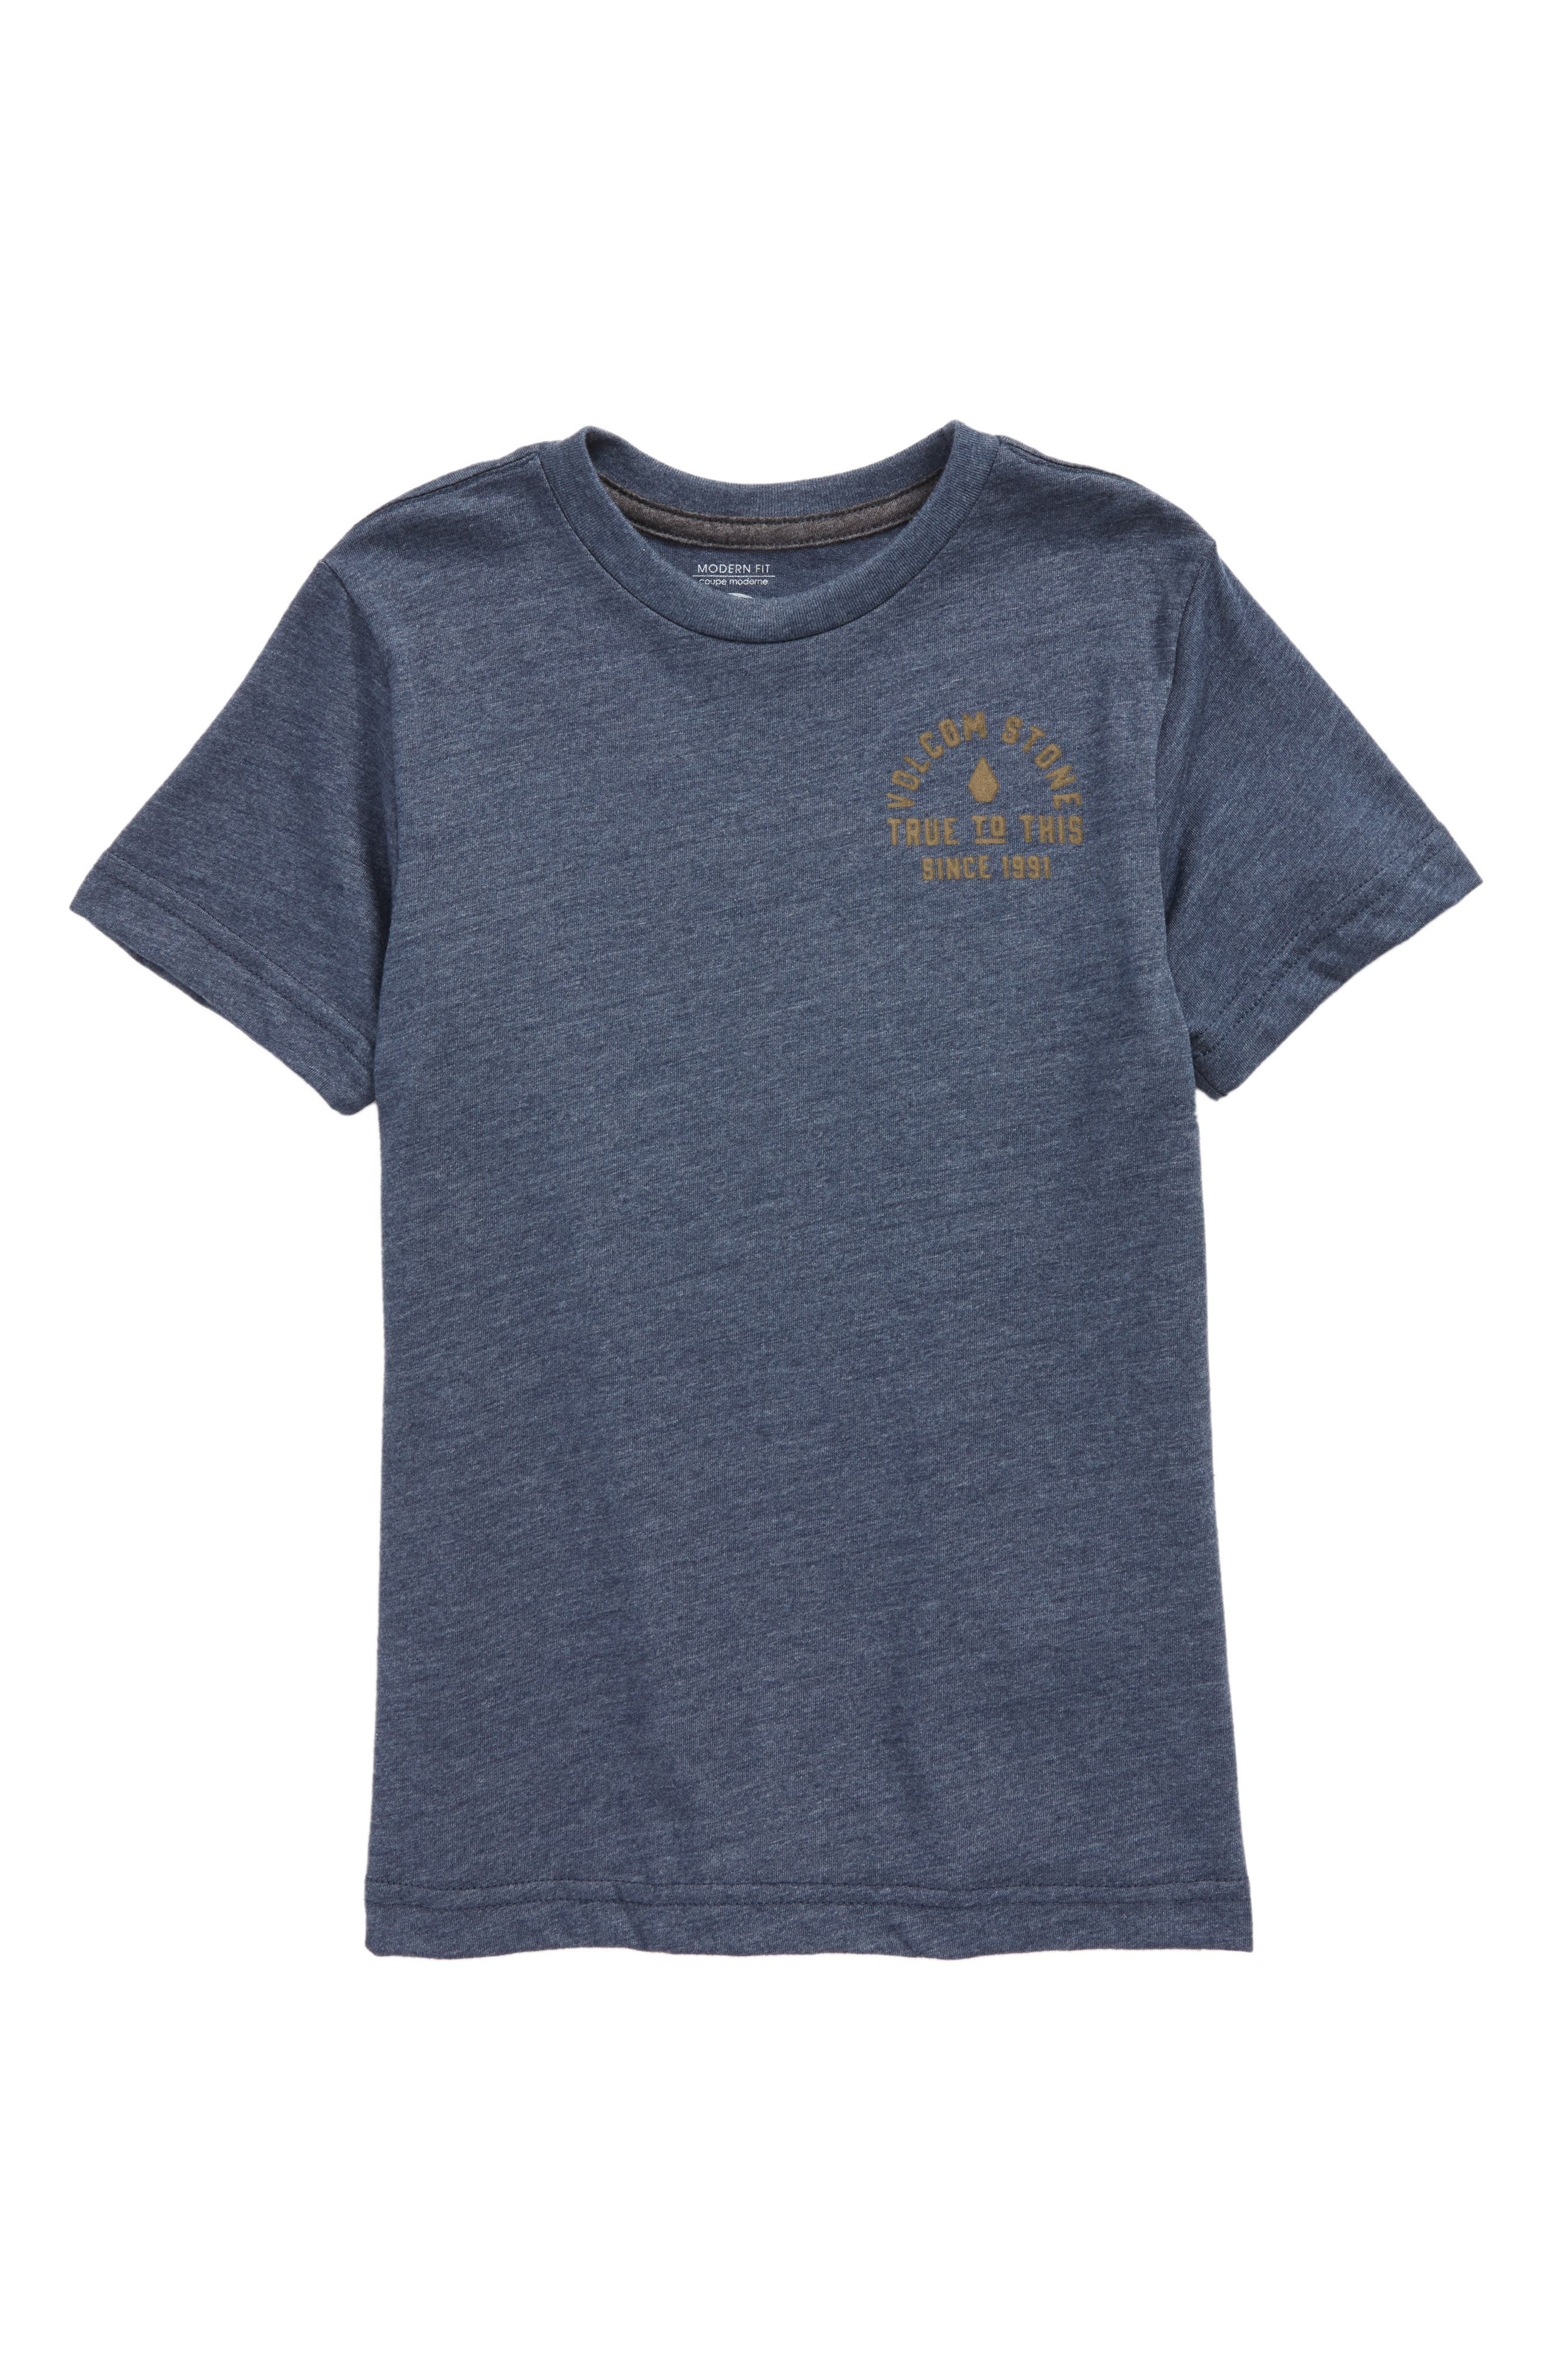 Stone Co. T-Shirt,                         Main,                         color, 405